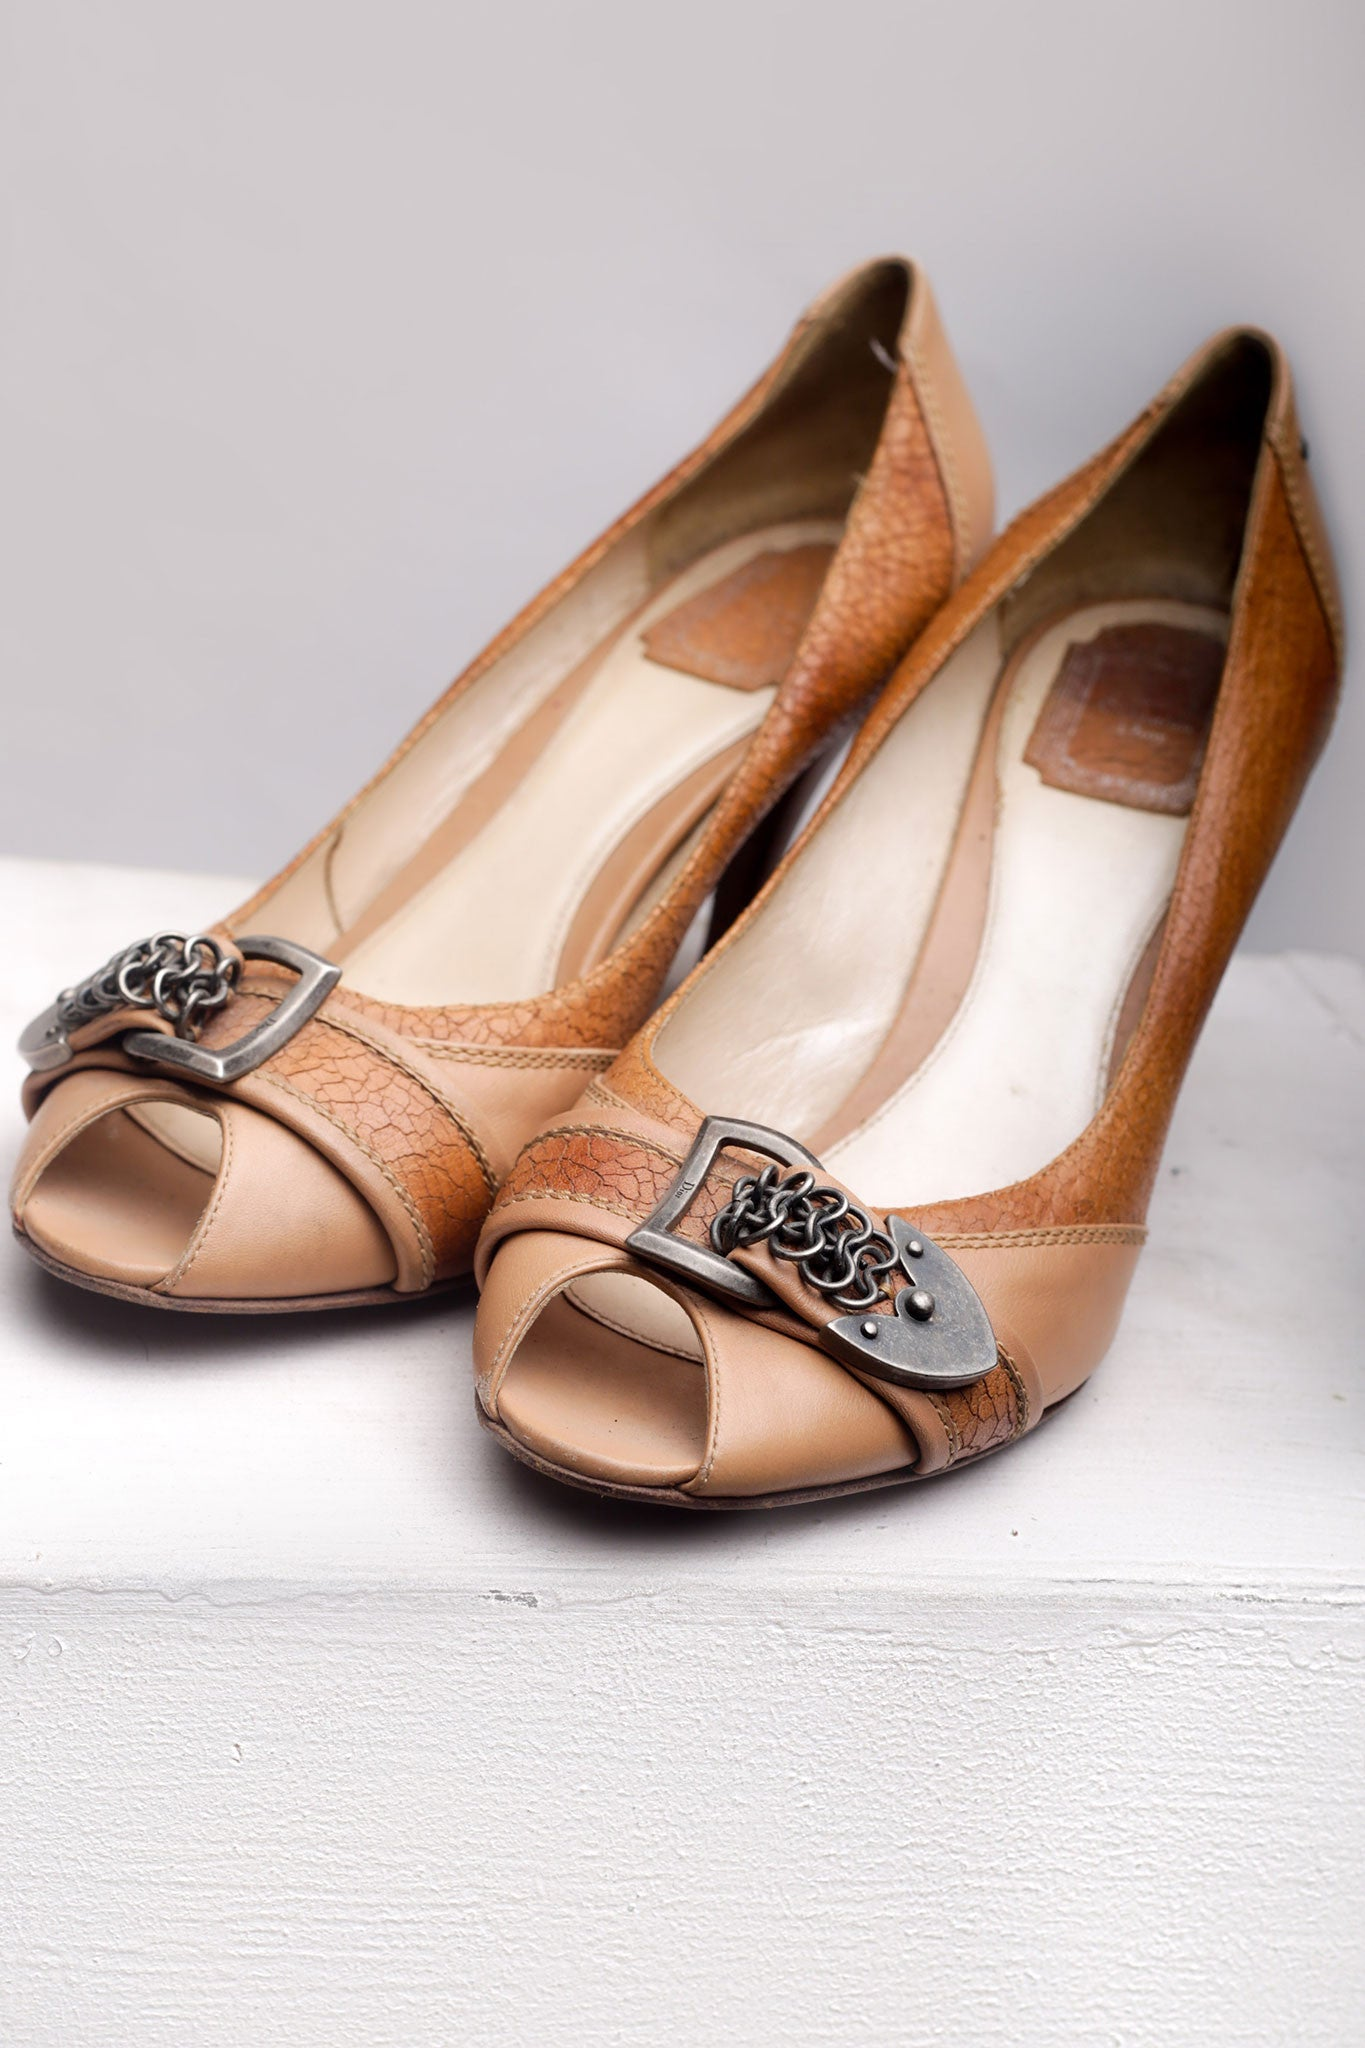 Classic Pumps by Dior